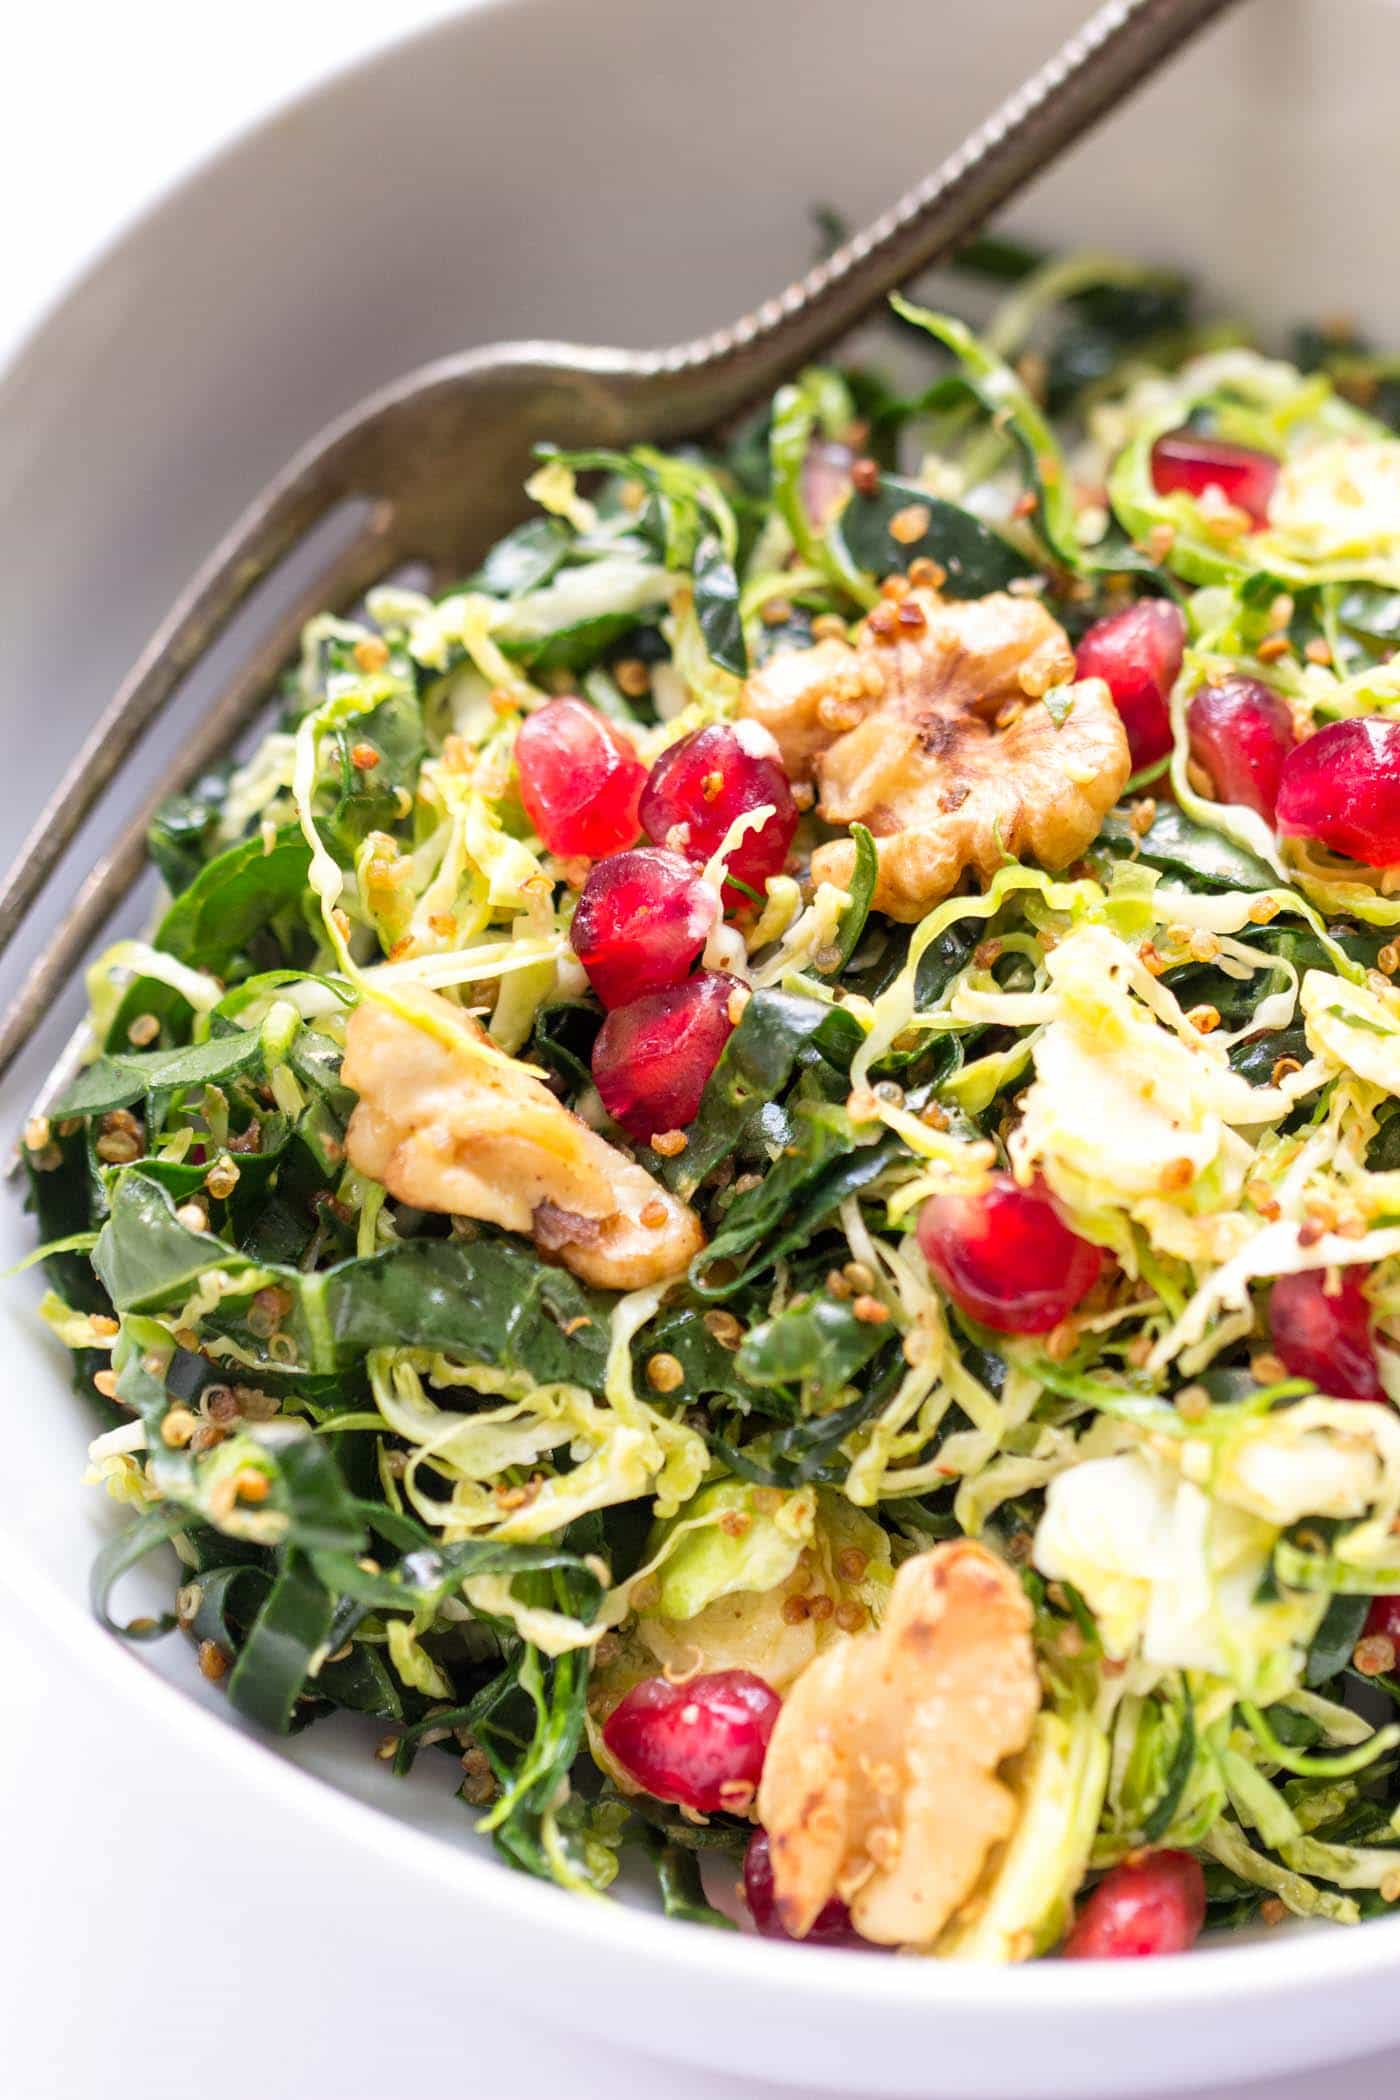 The perfect holiday salad -- Shredded Brussels Sprouts with kale, crispy quinoa, toasted walnuts and pomegranates